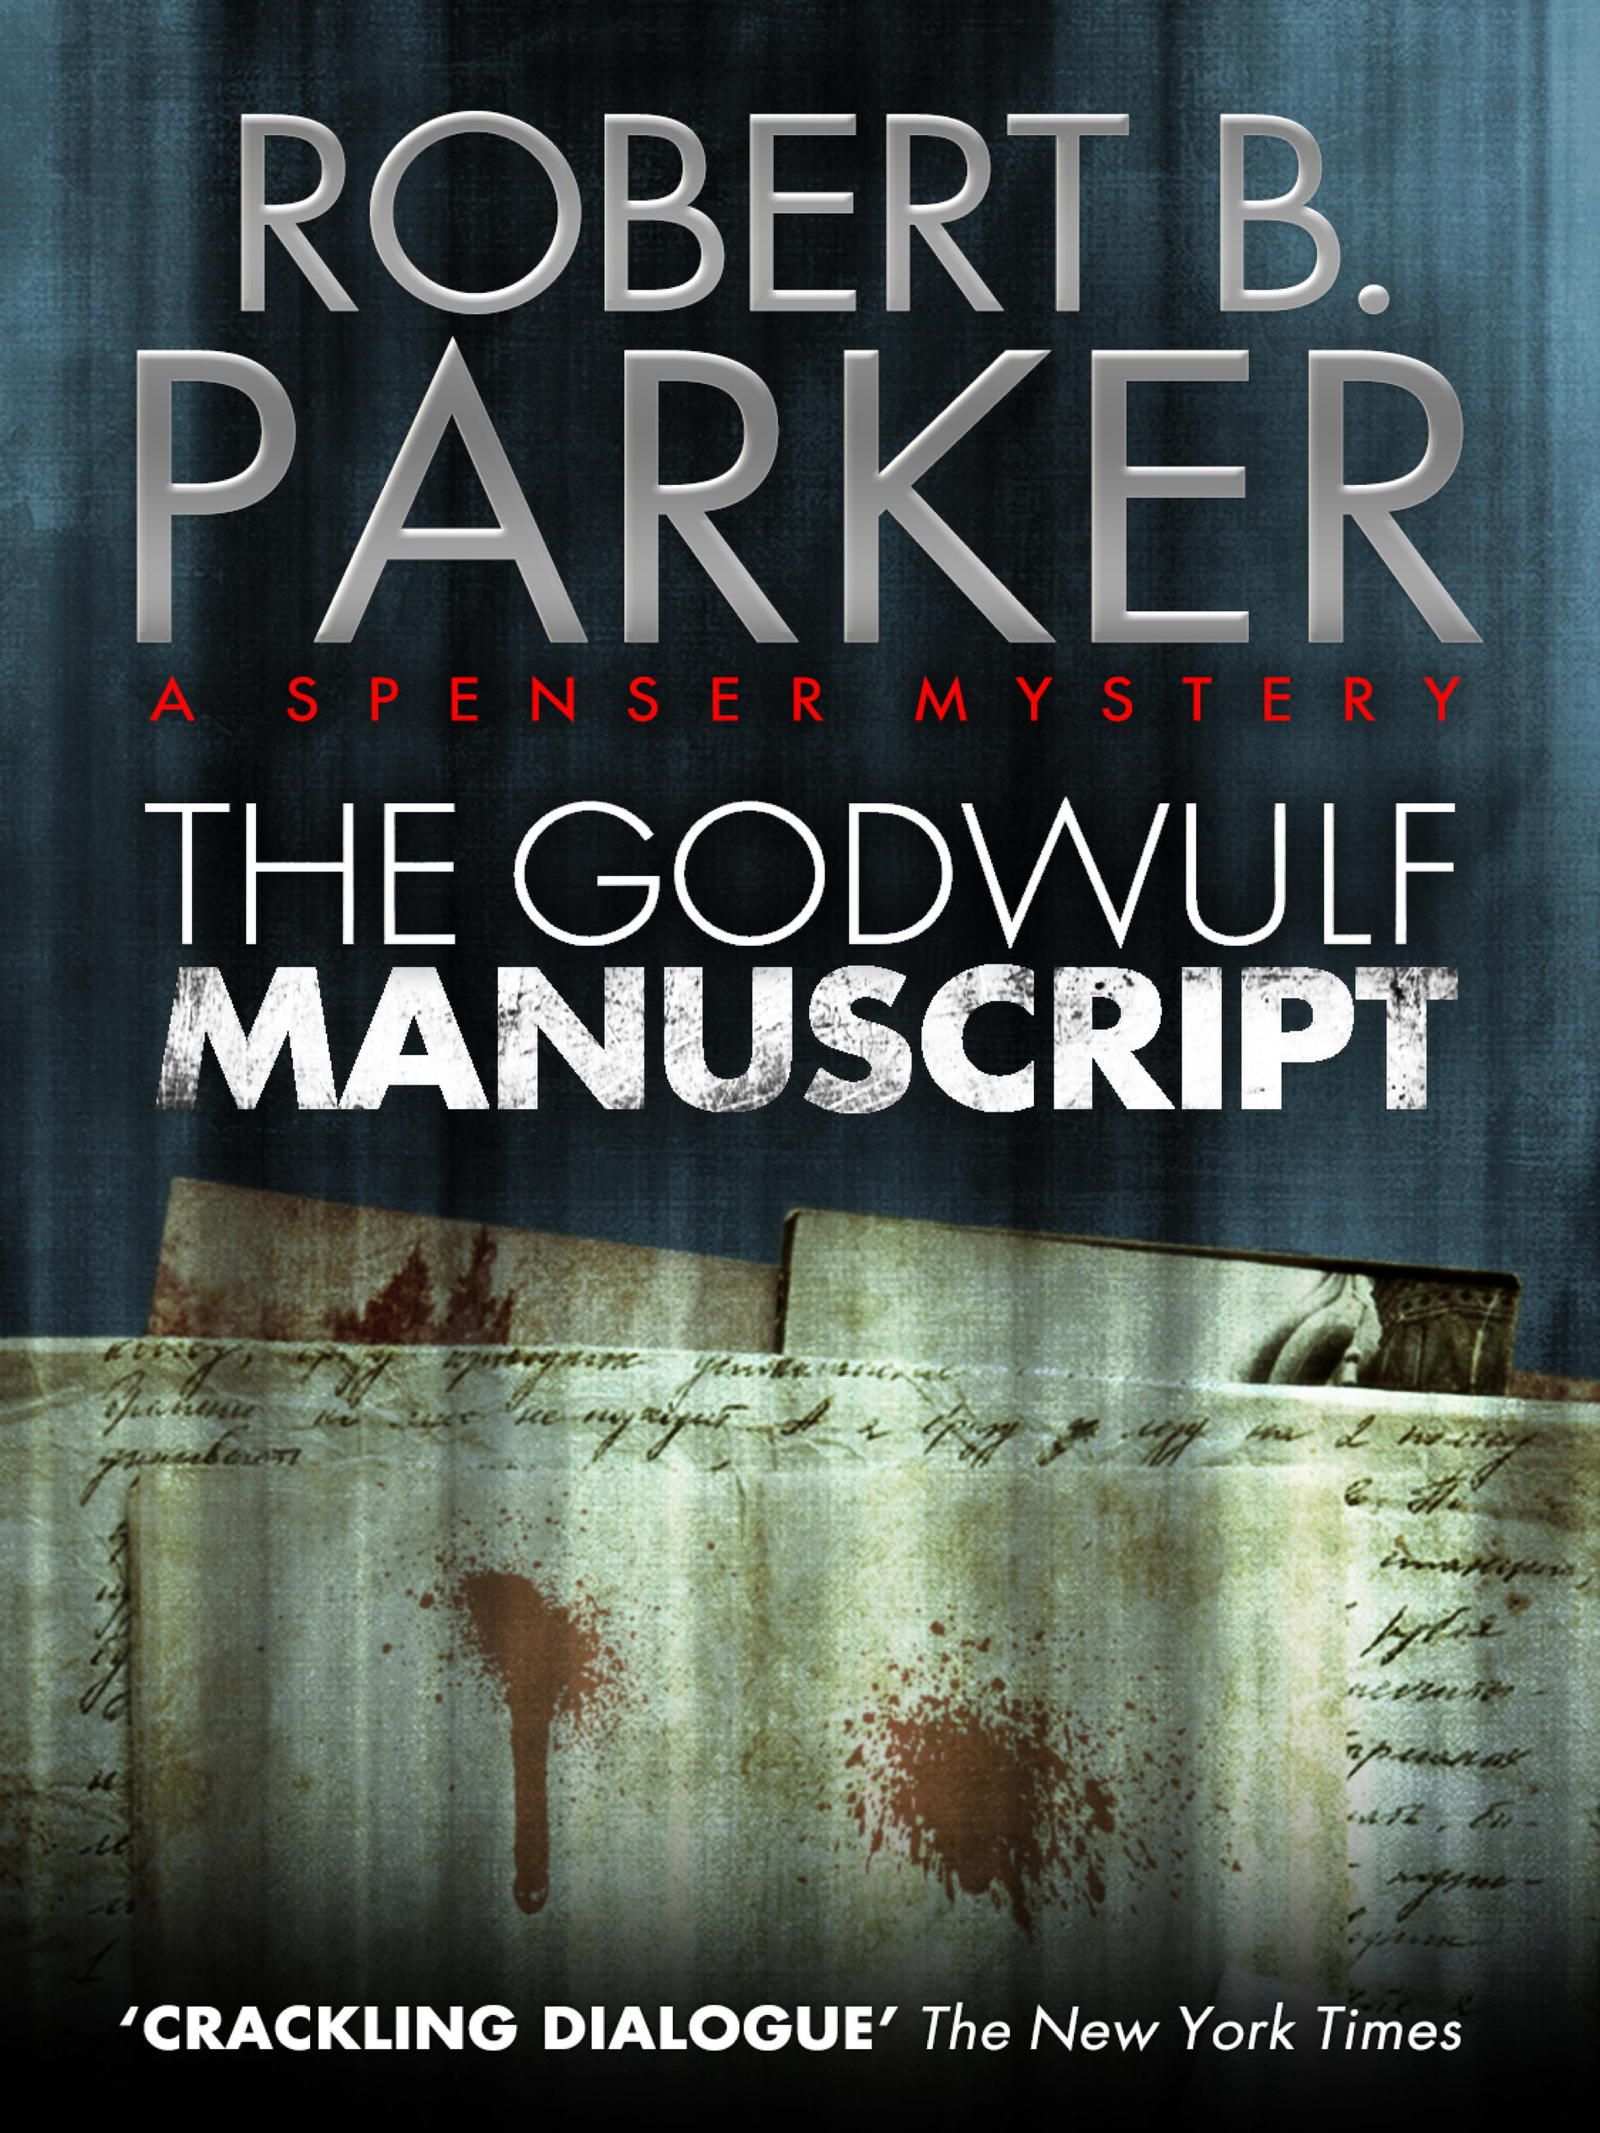 The Godwulf Manuscript (A Spenser Mystery)